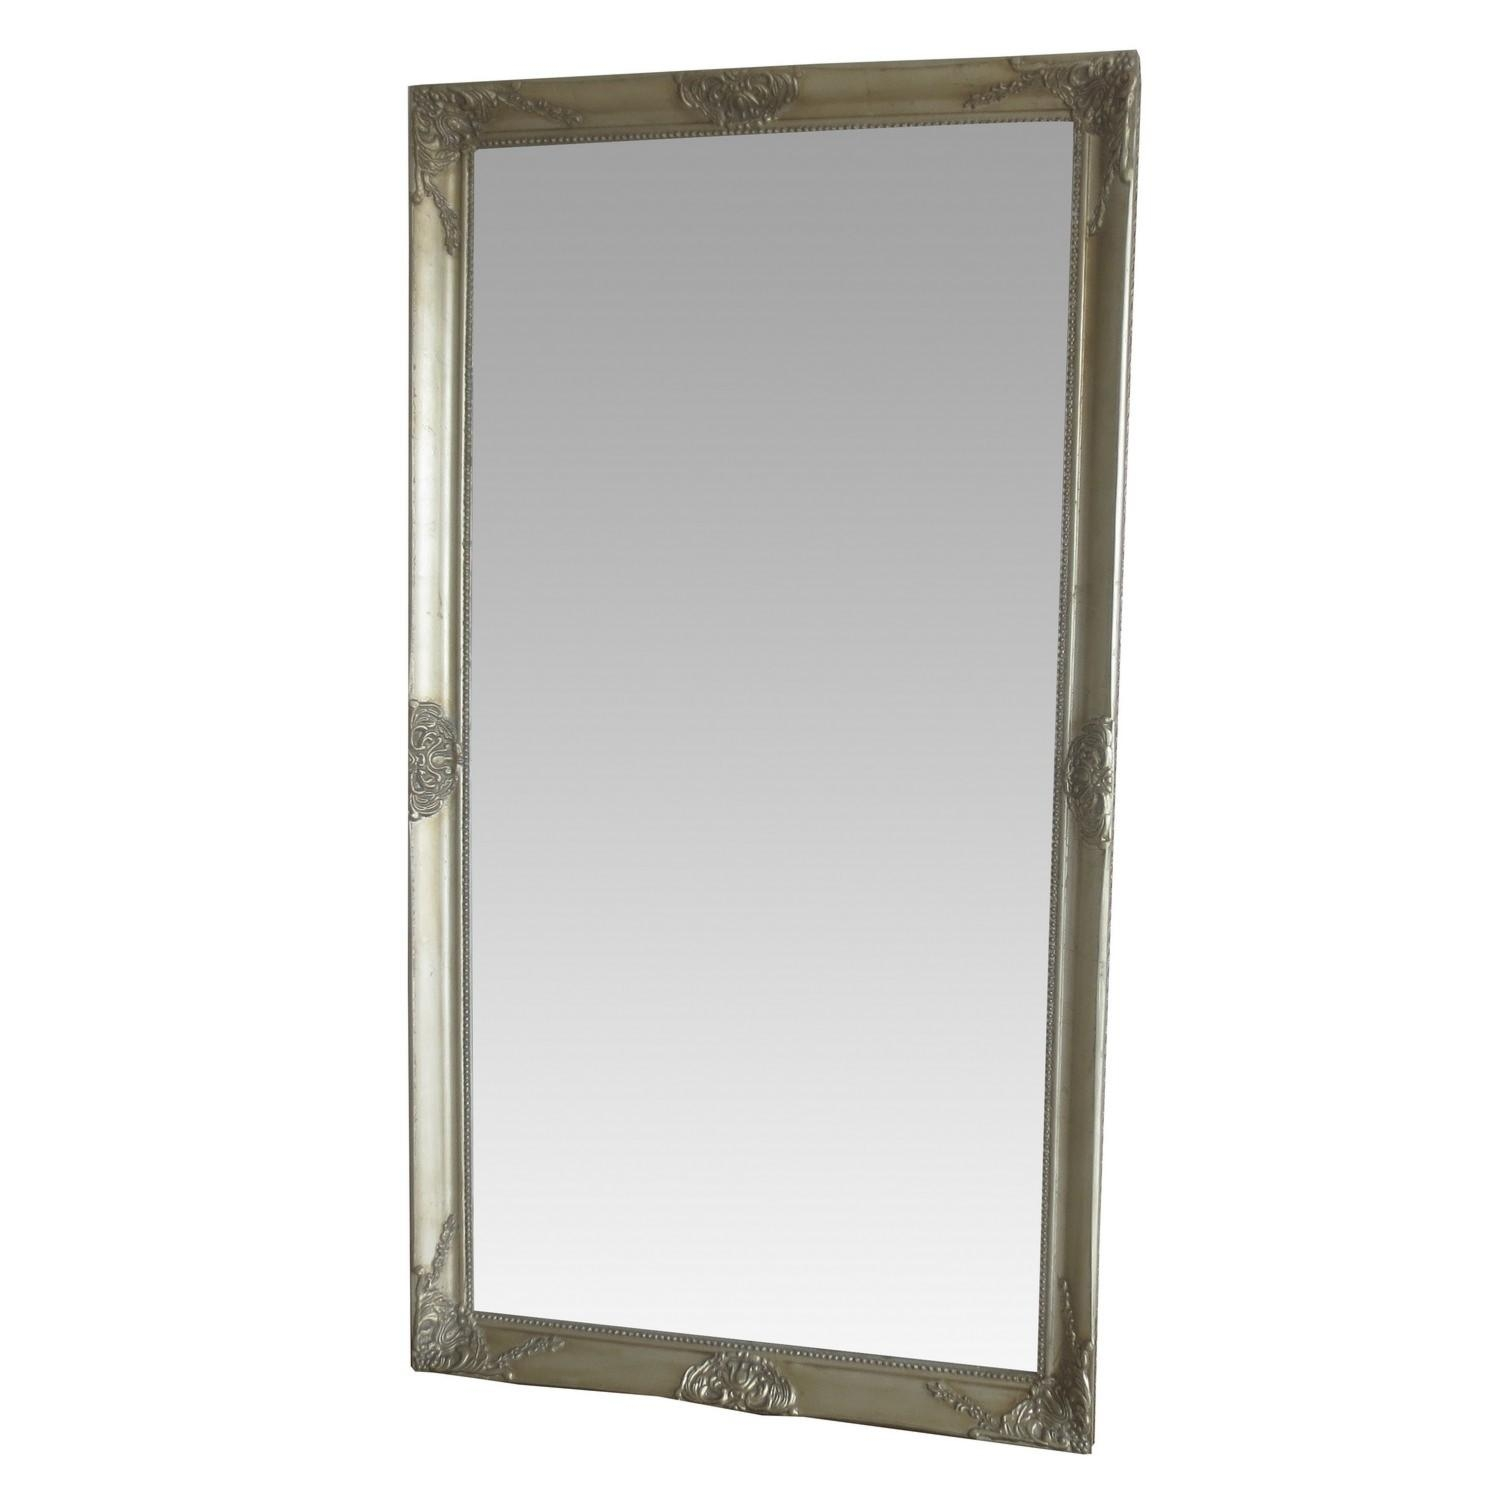 Champagne Lean To Mirror Intended For Full Length Ornate Mirror (Image 4 of 20)